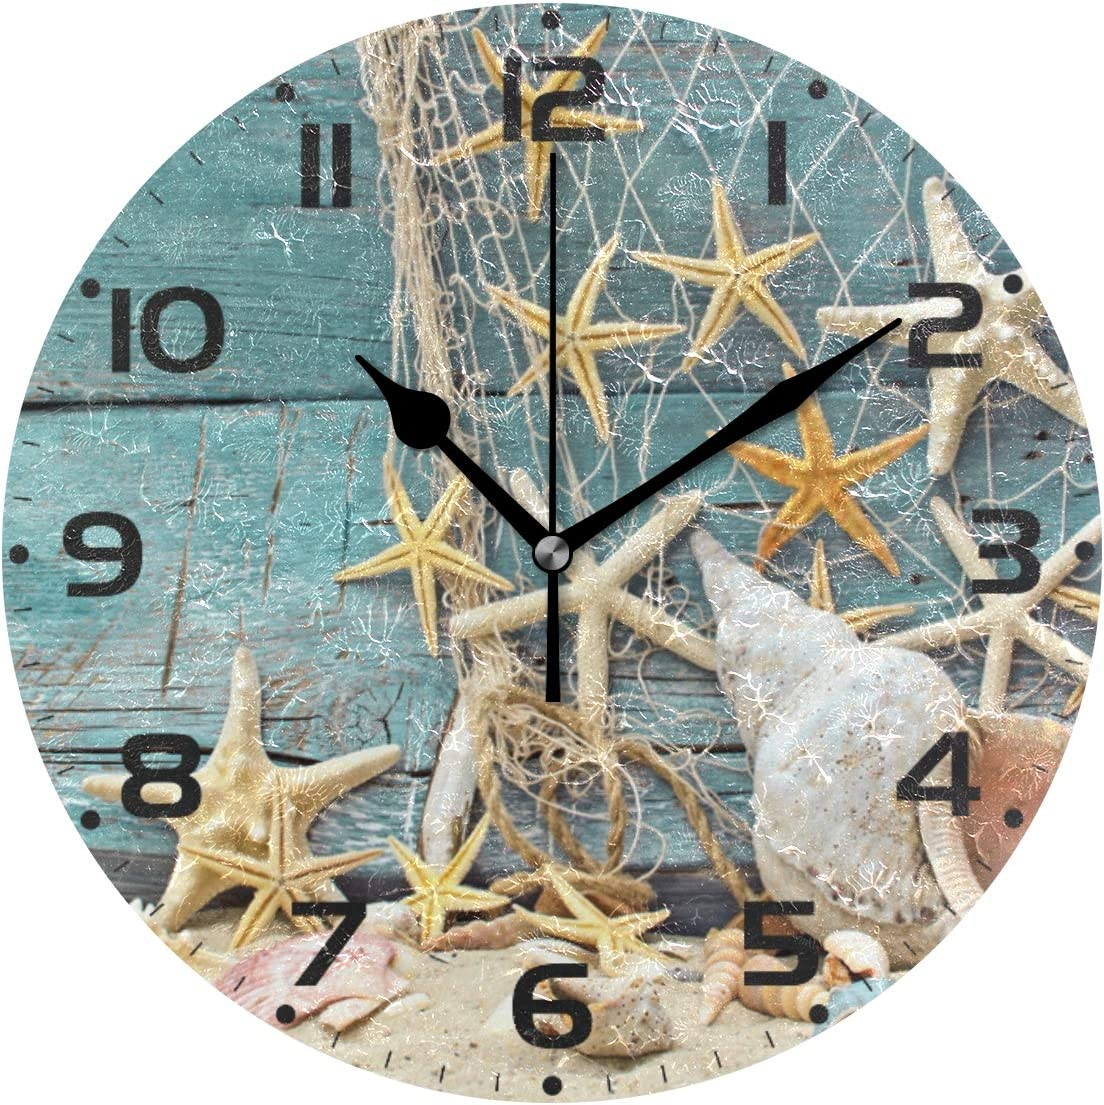 Ollabaky Ocean Theme Decorative Wall Clocks Battery Operated Silent Desk  Clock, Sea Shells 12 Inch Non Ticking Clock for Office School Home Round  Wall ...